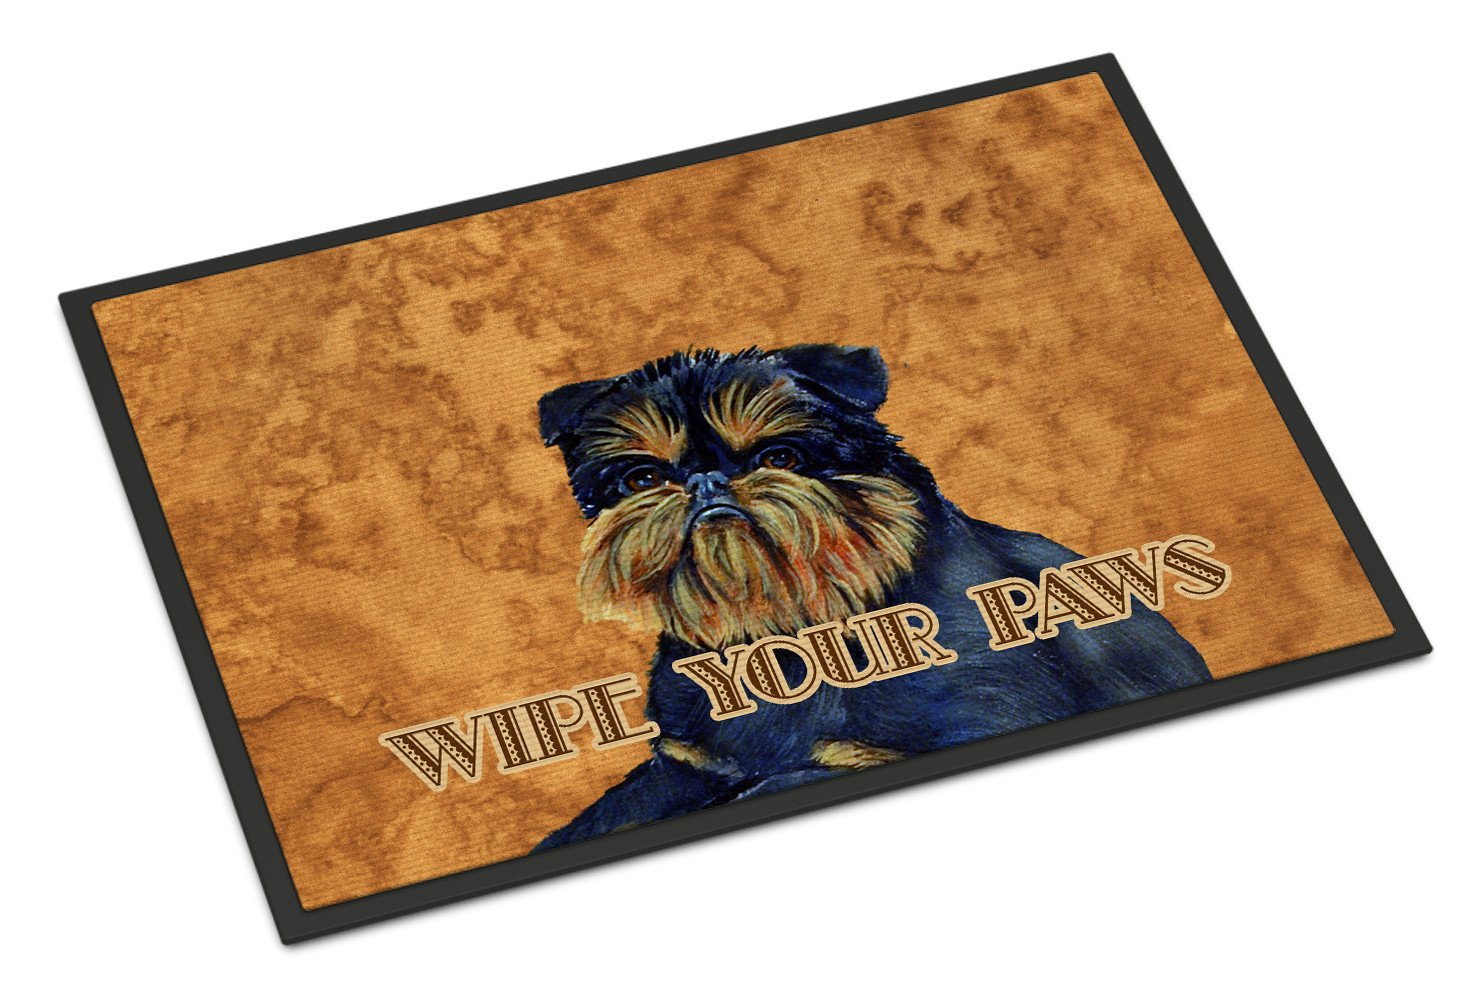 Brussels Griffon Wipe your Paws Indoor or Outdoor Mat 18x27 LH9462MAT by Caroline's Treasures